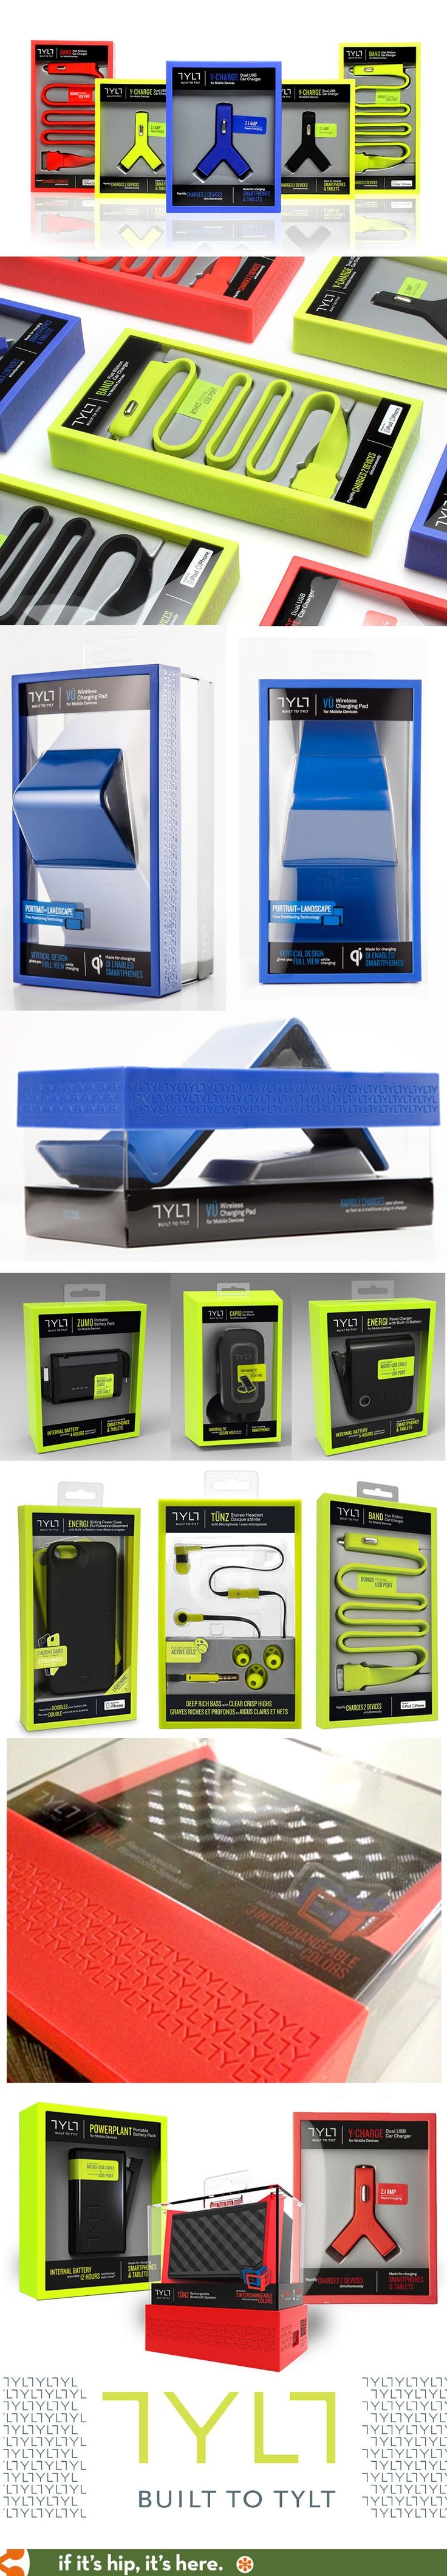 Beautifully designed packaging for all of TYLT's products by NewDealDesign.